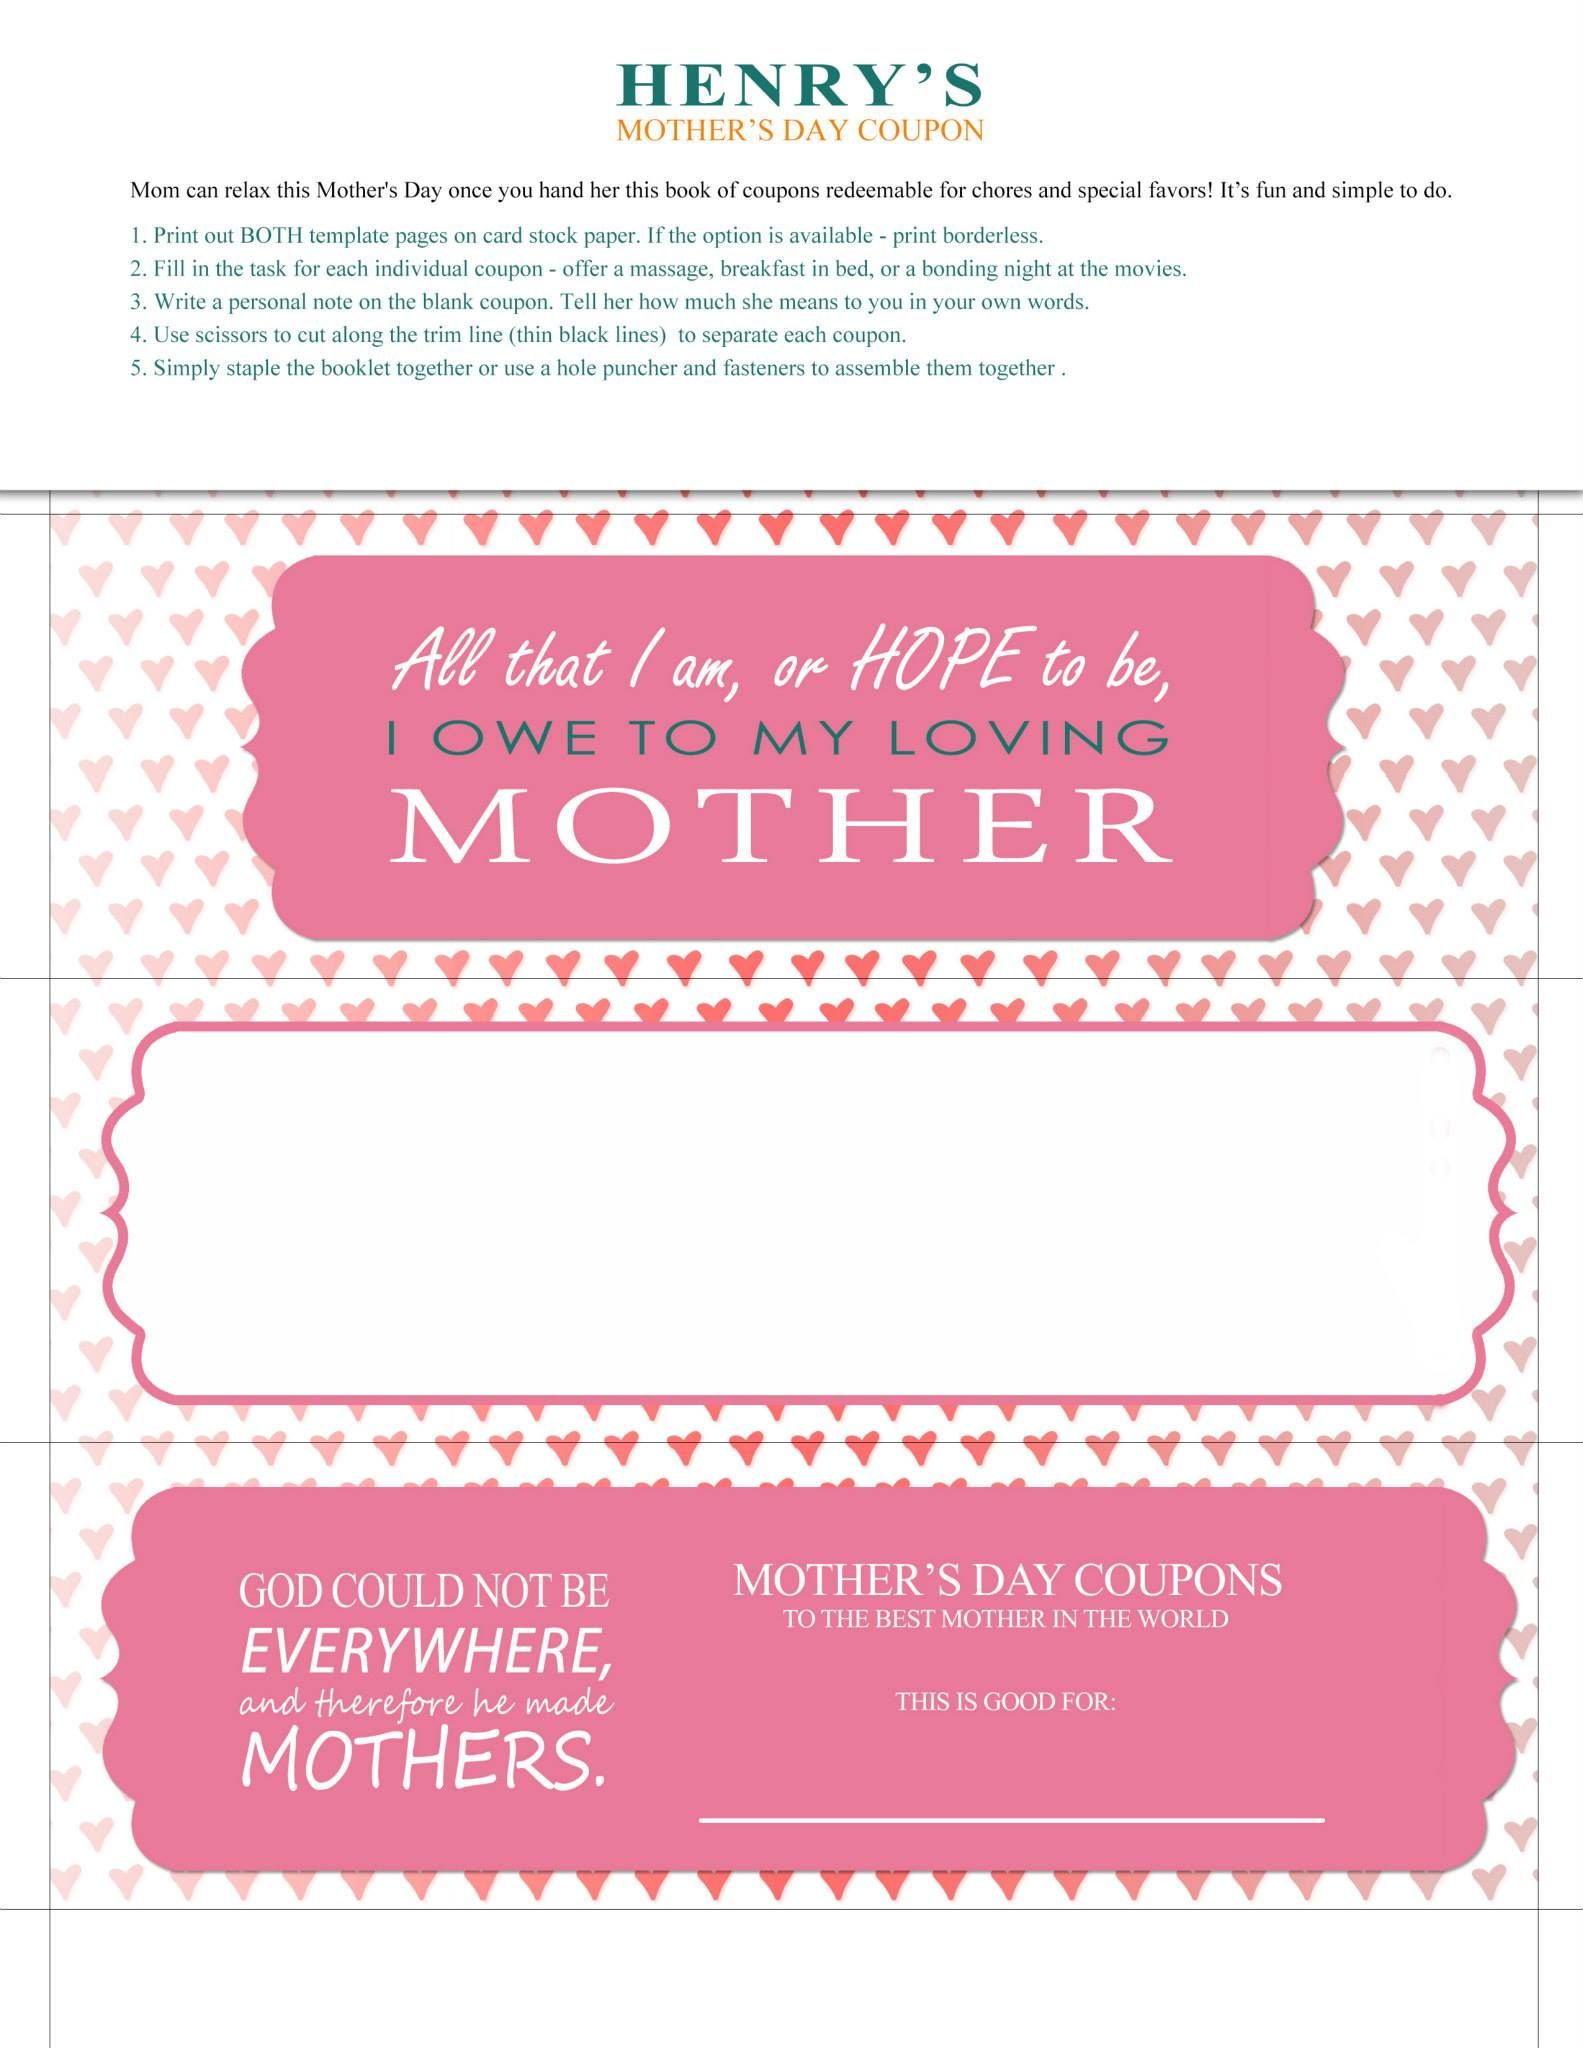 Print, cut then fill out! Customize these printable coupons and let her know how special she is - or share to drop some hints!